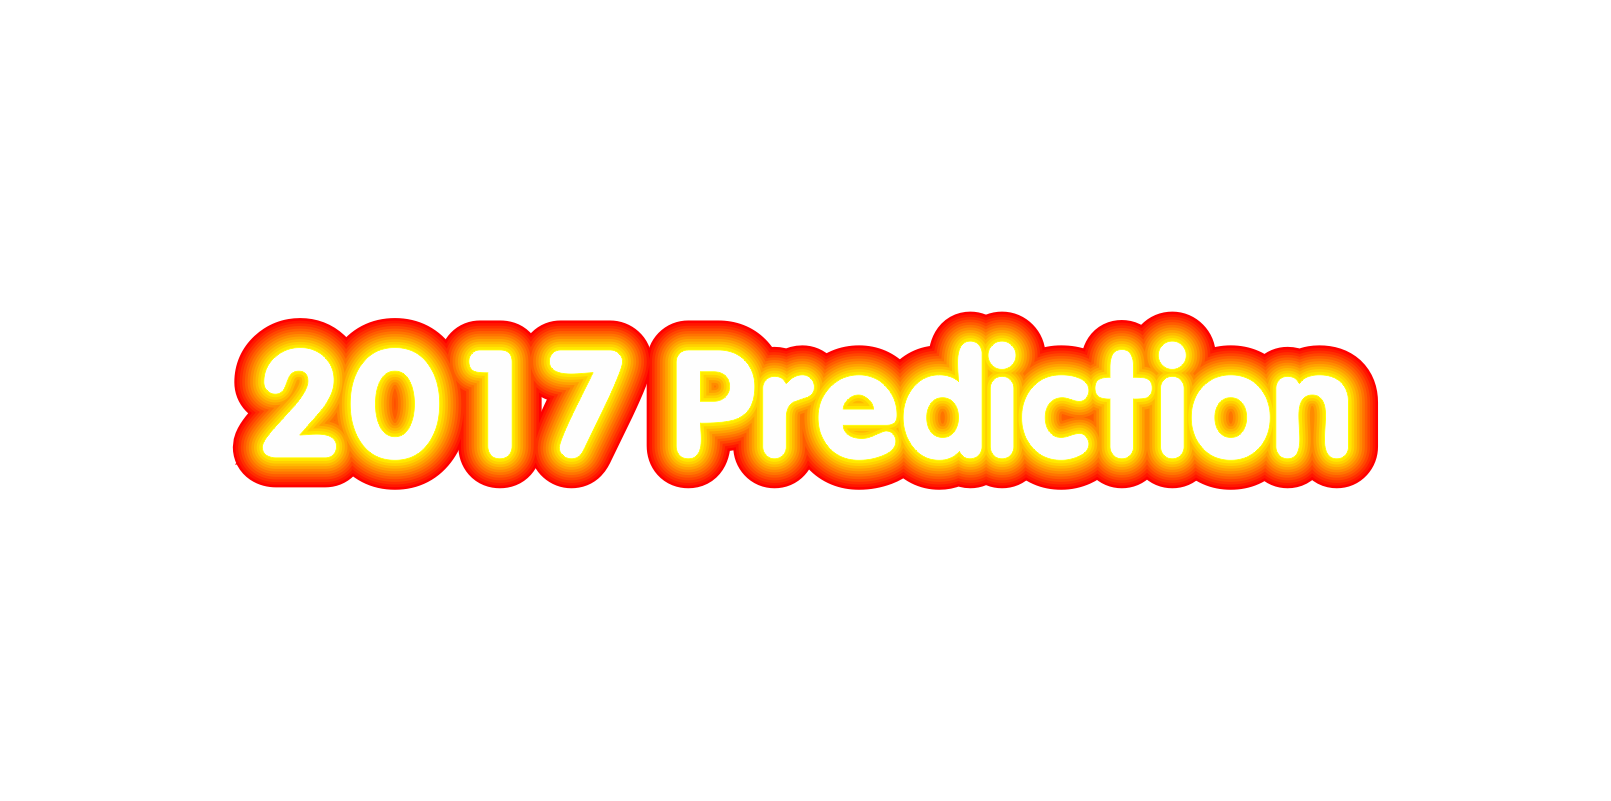 2017 Prediction